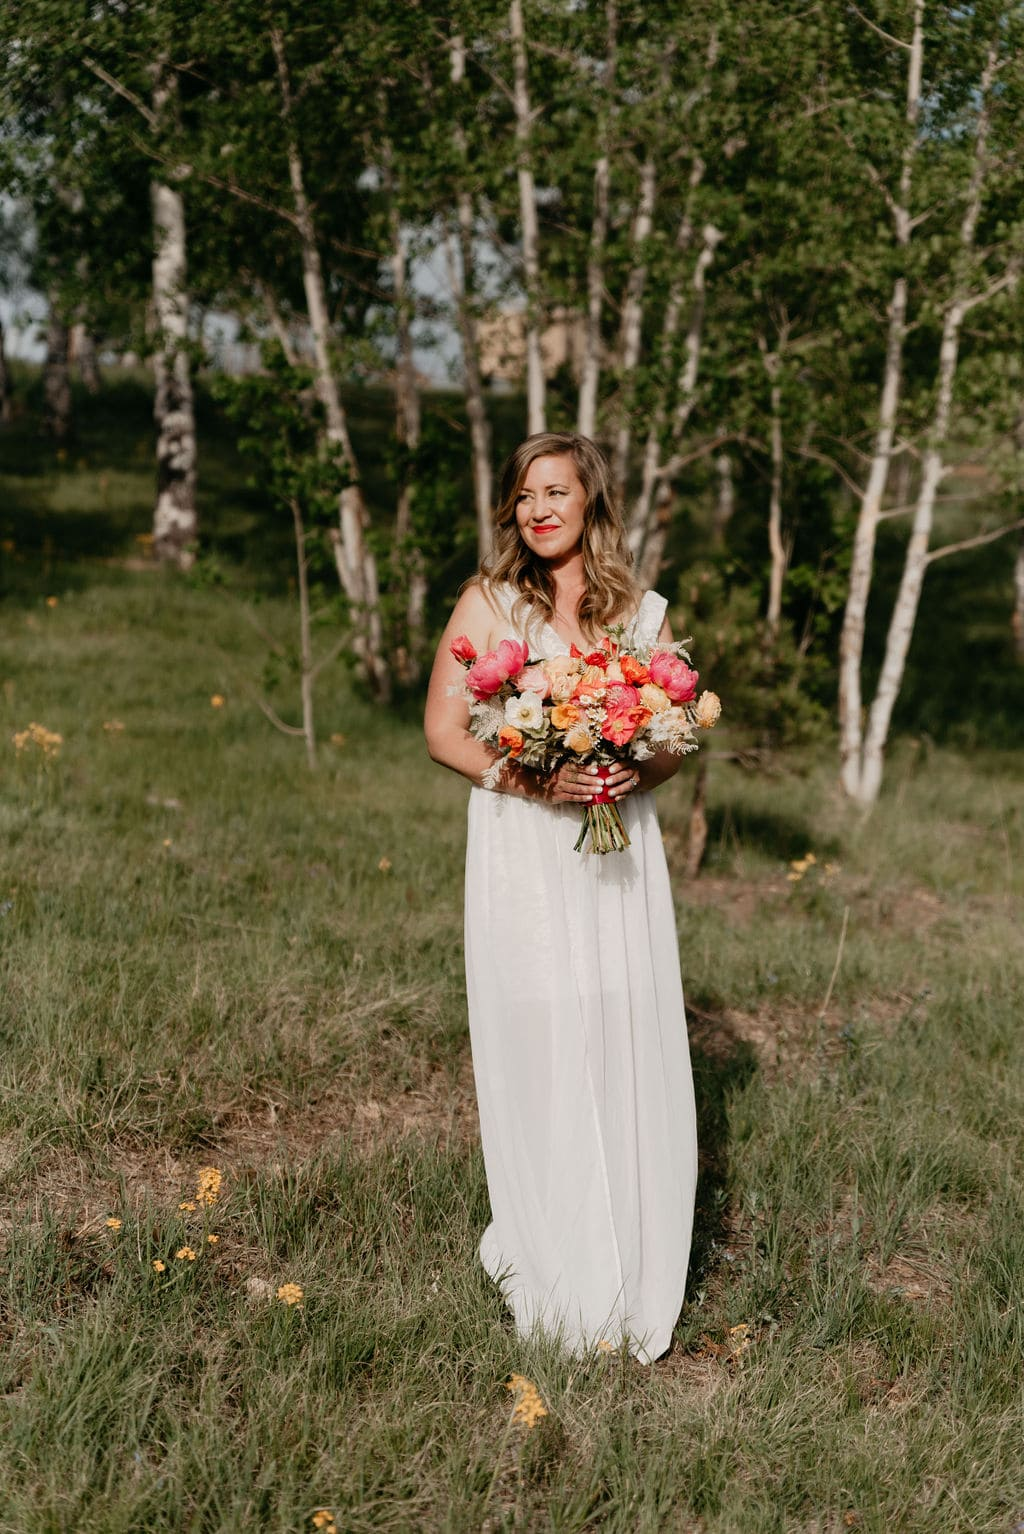 bridal portraits with beautiful wedding florals